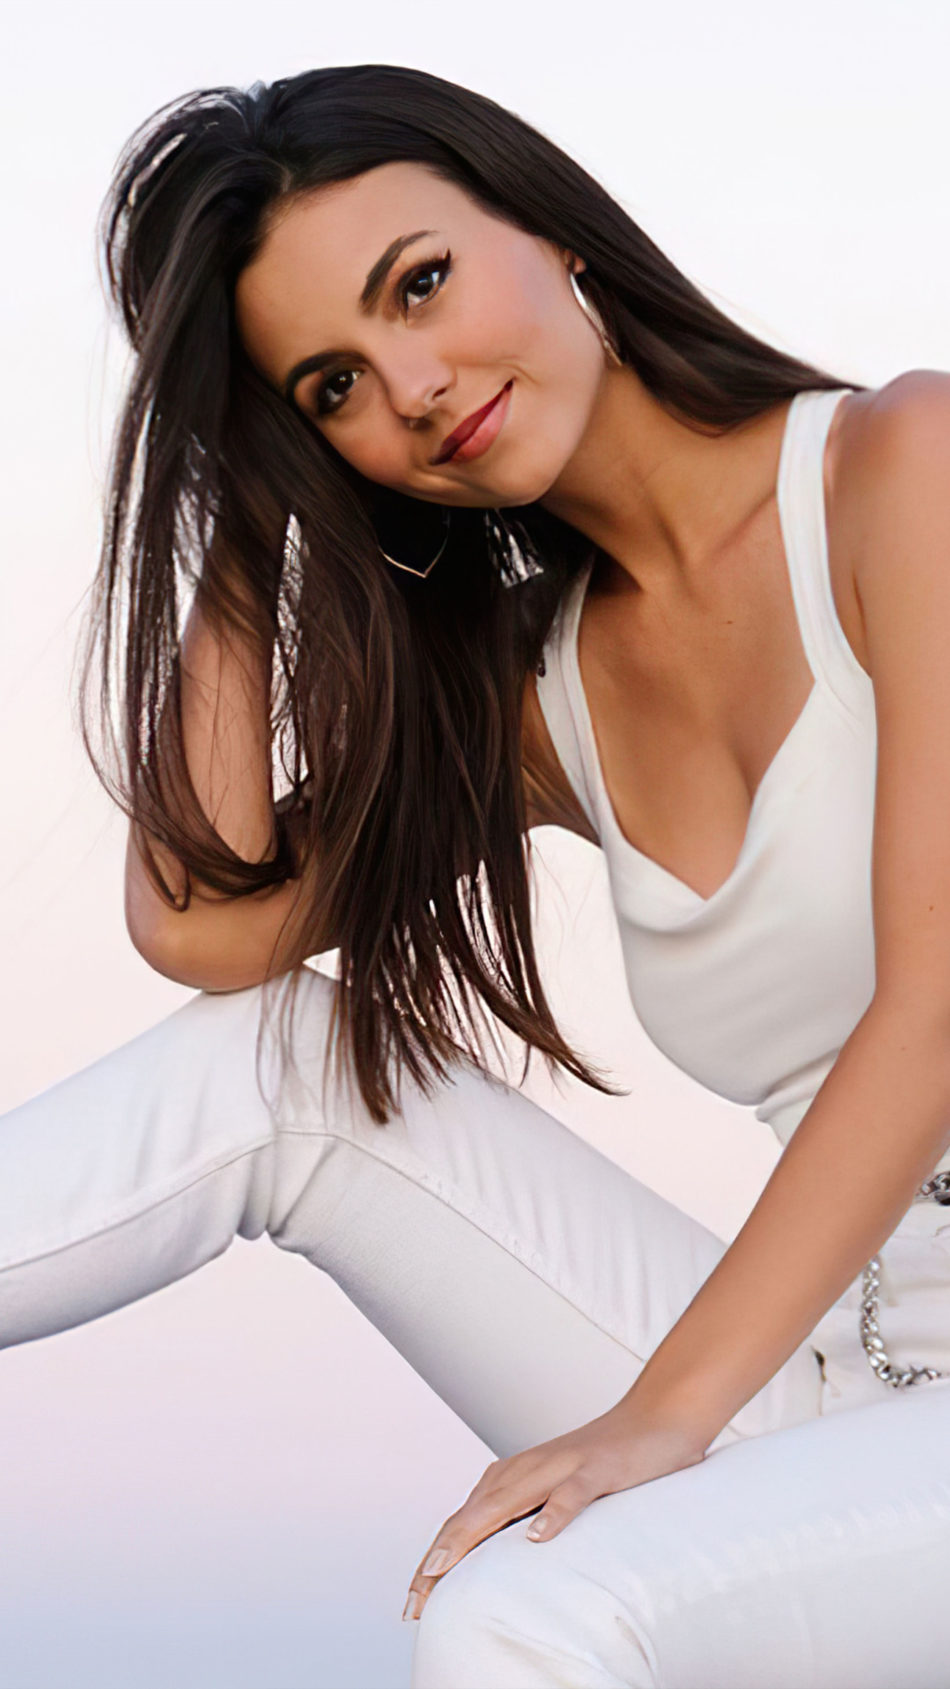 Victoria Justice 2020 White Outfit 4K Ultra HD Mobile Wallpaper